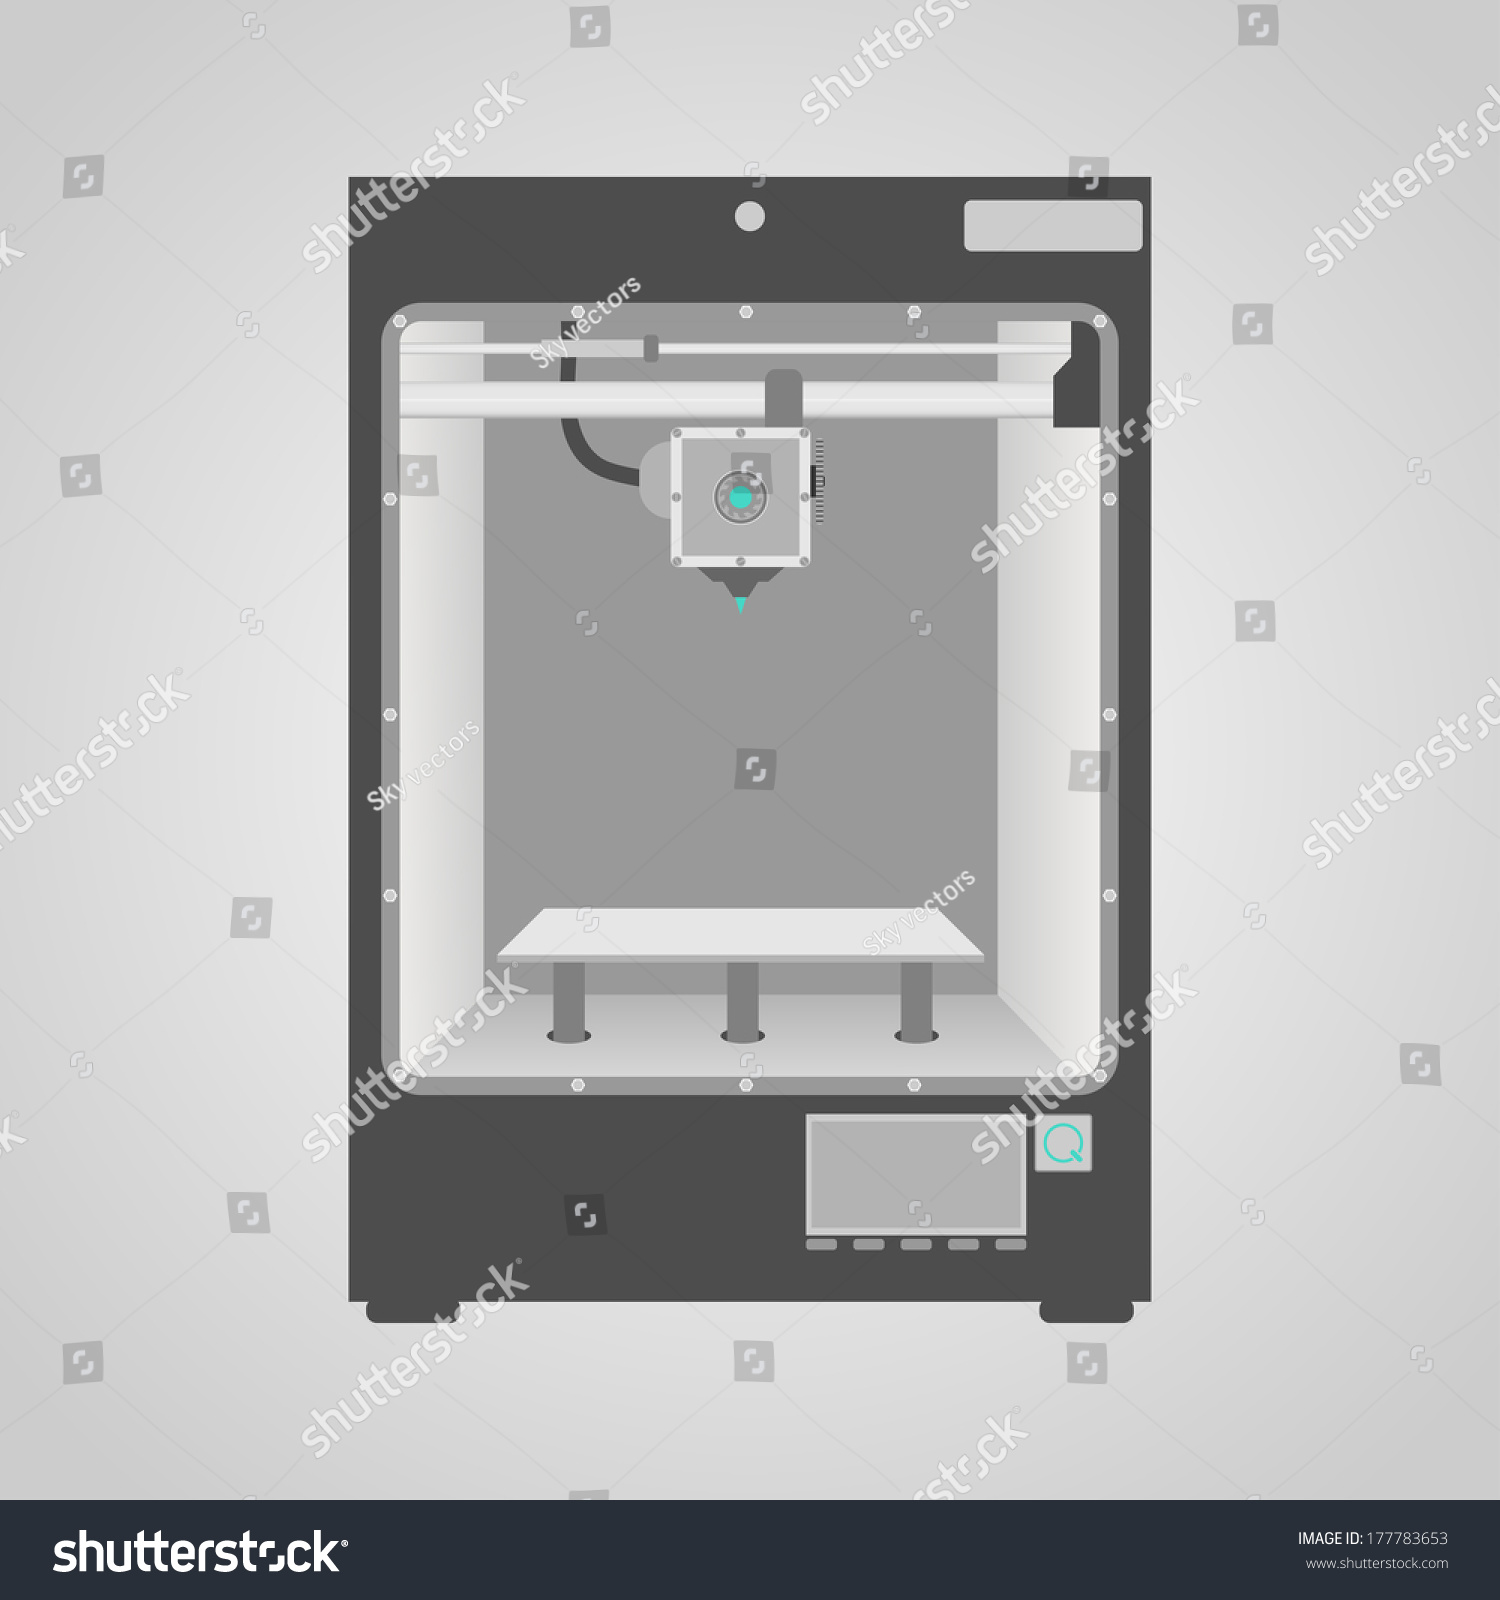 hight resolution of prototype model of 3d printer in gray and white colors easy to place inside printer